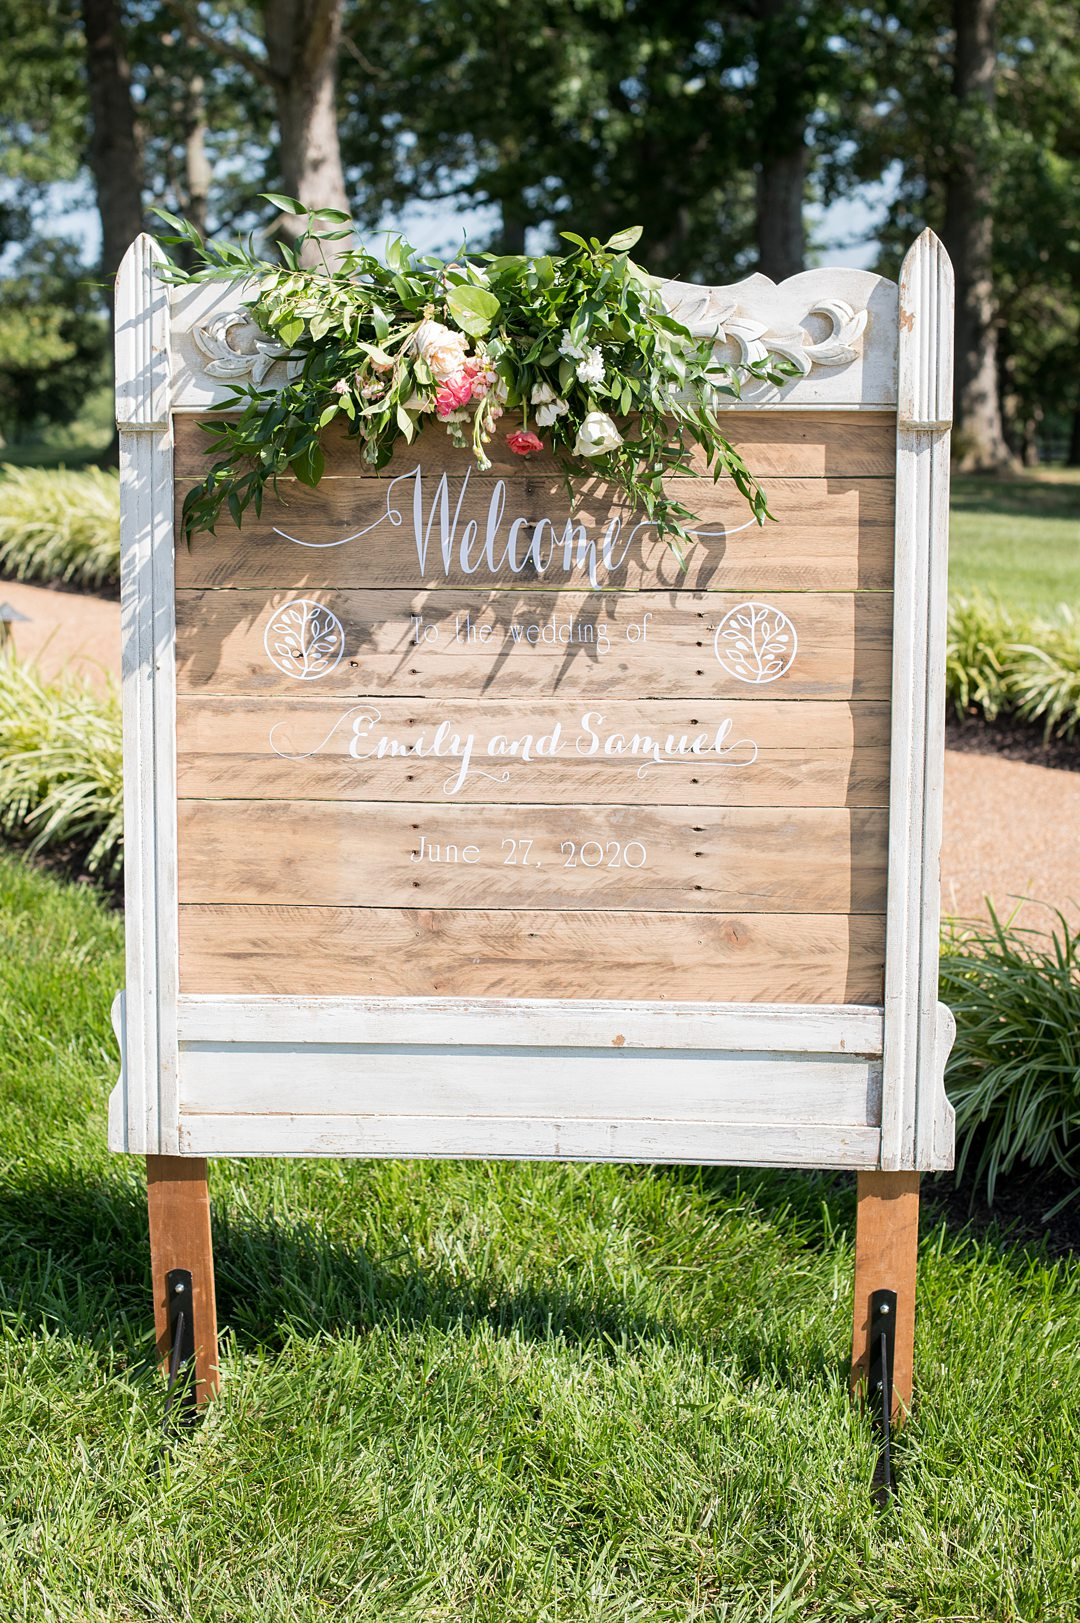 The wedding welcome sign with script letters on a custom wood frame for a small wedding at The Lodge at Mount Ida Farm overlooking the Blue Ridge Mountains. Photographed by Mikkel Paige Photography.